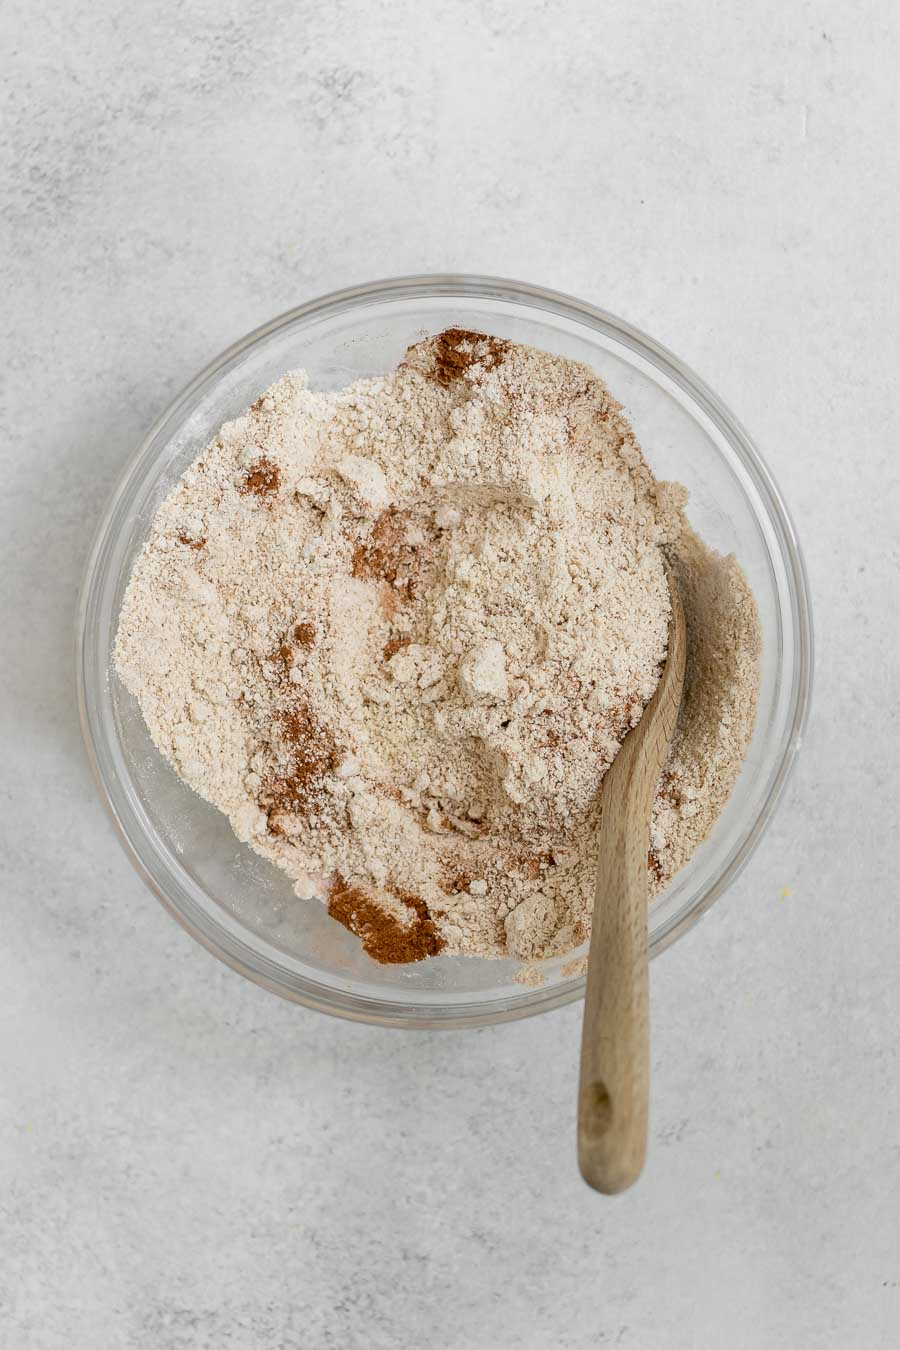 Mixing the dry ingredients together.